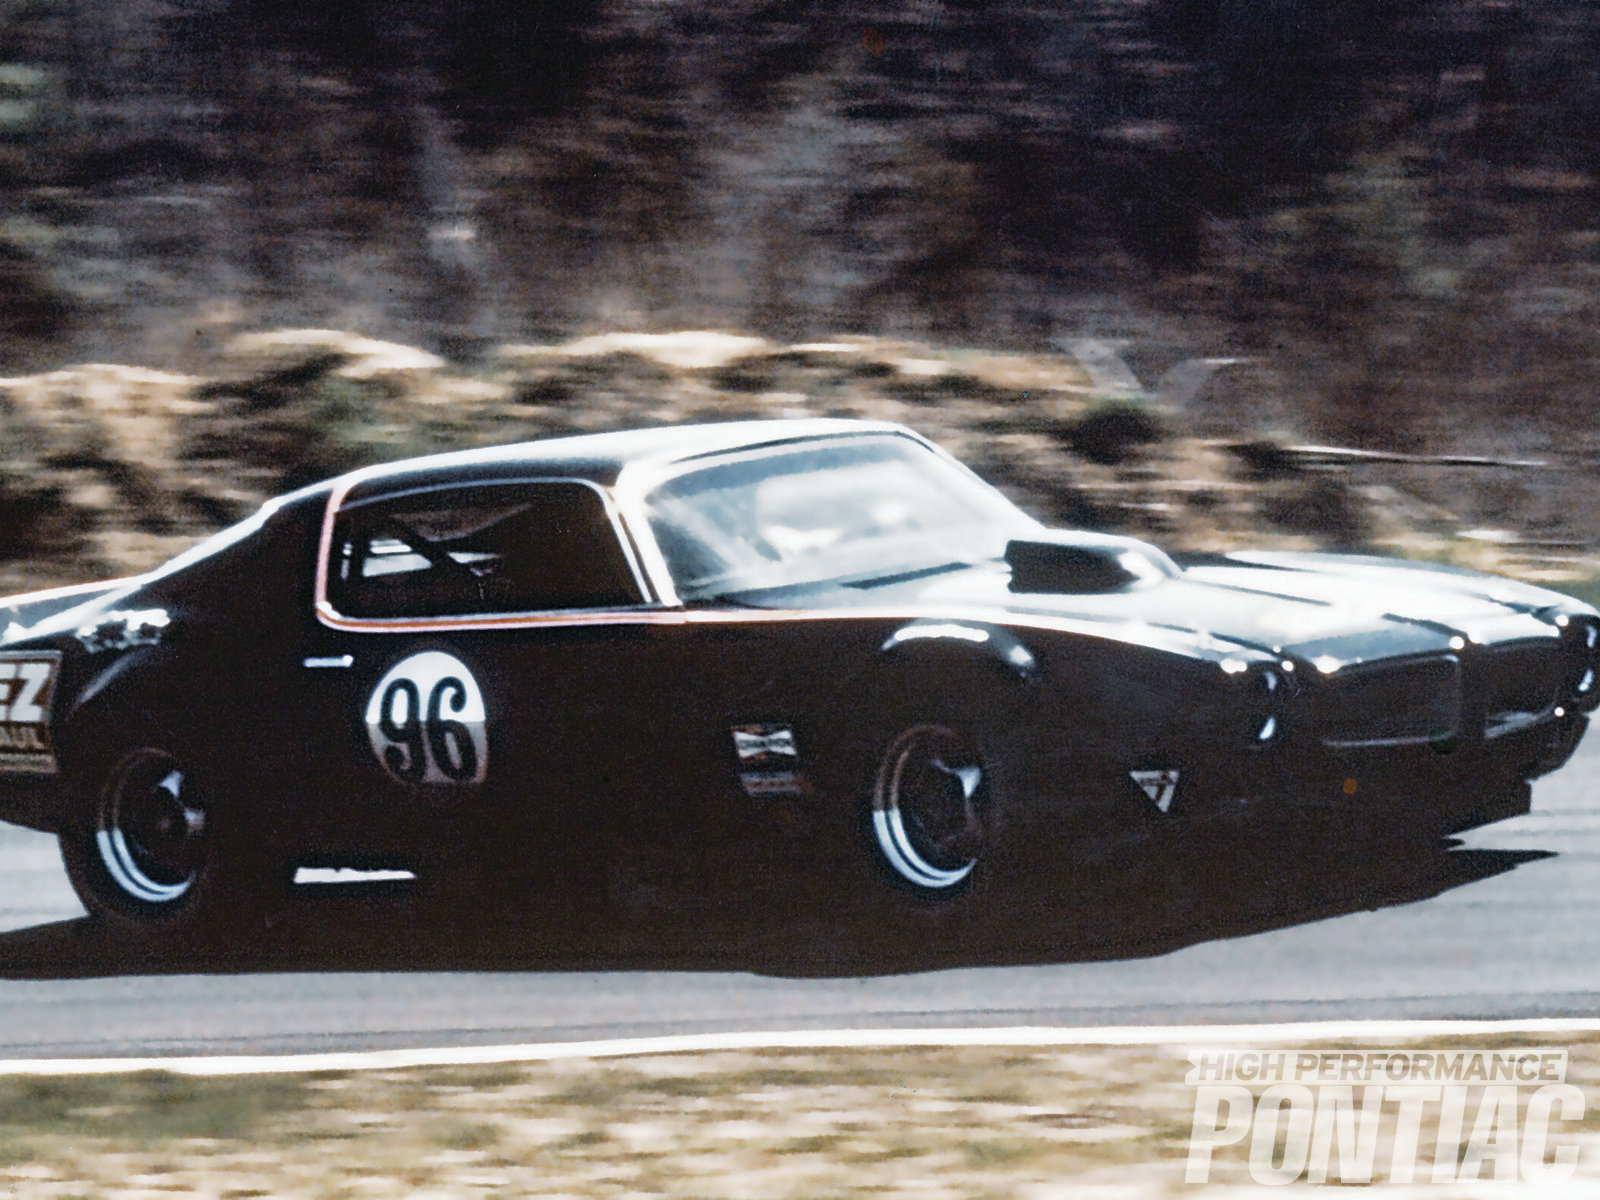 The Pontiac Special Projects team members pooled their money to buy a '71 Firebird and turned it into this 303-powered road racer. It was the only Pontiac-engine car to ever win a Trans-Am series race.